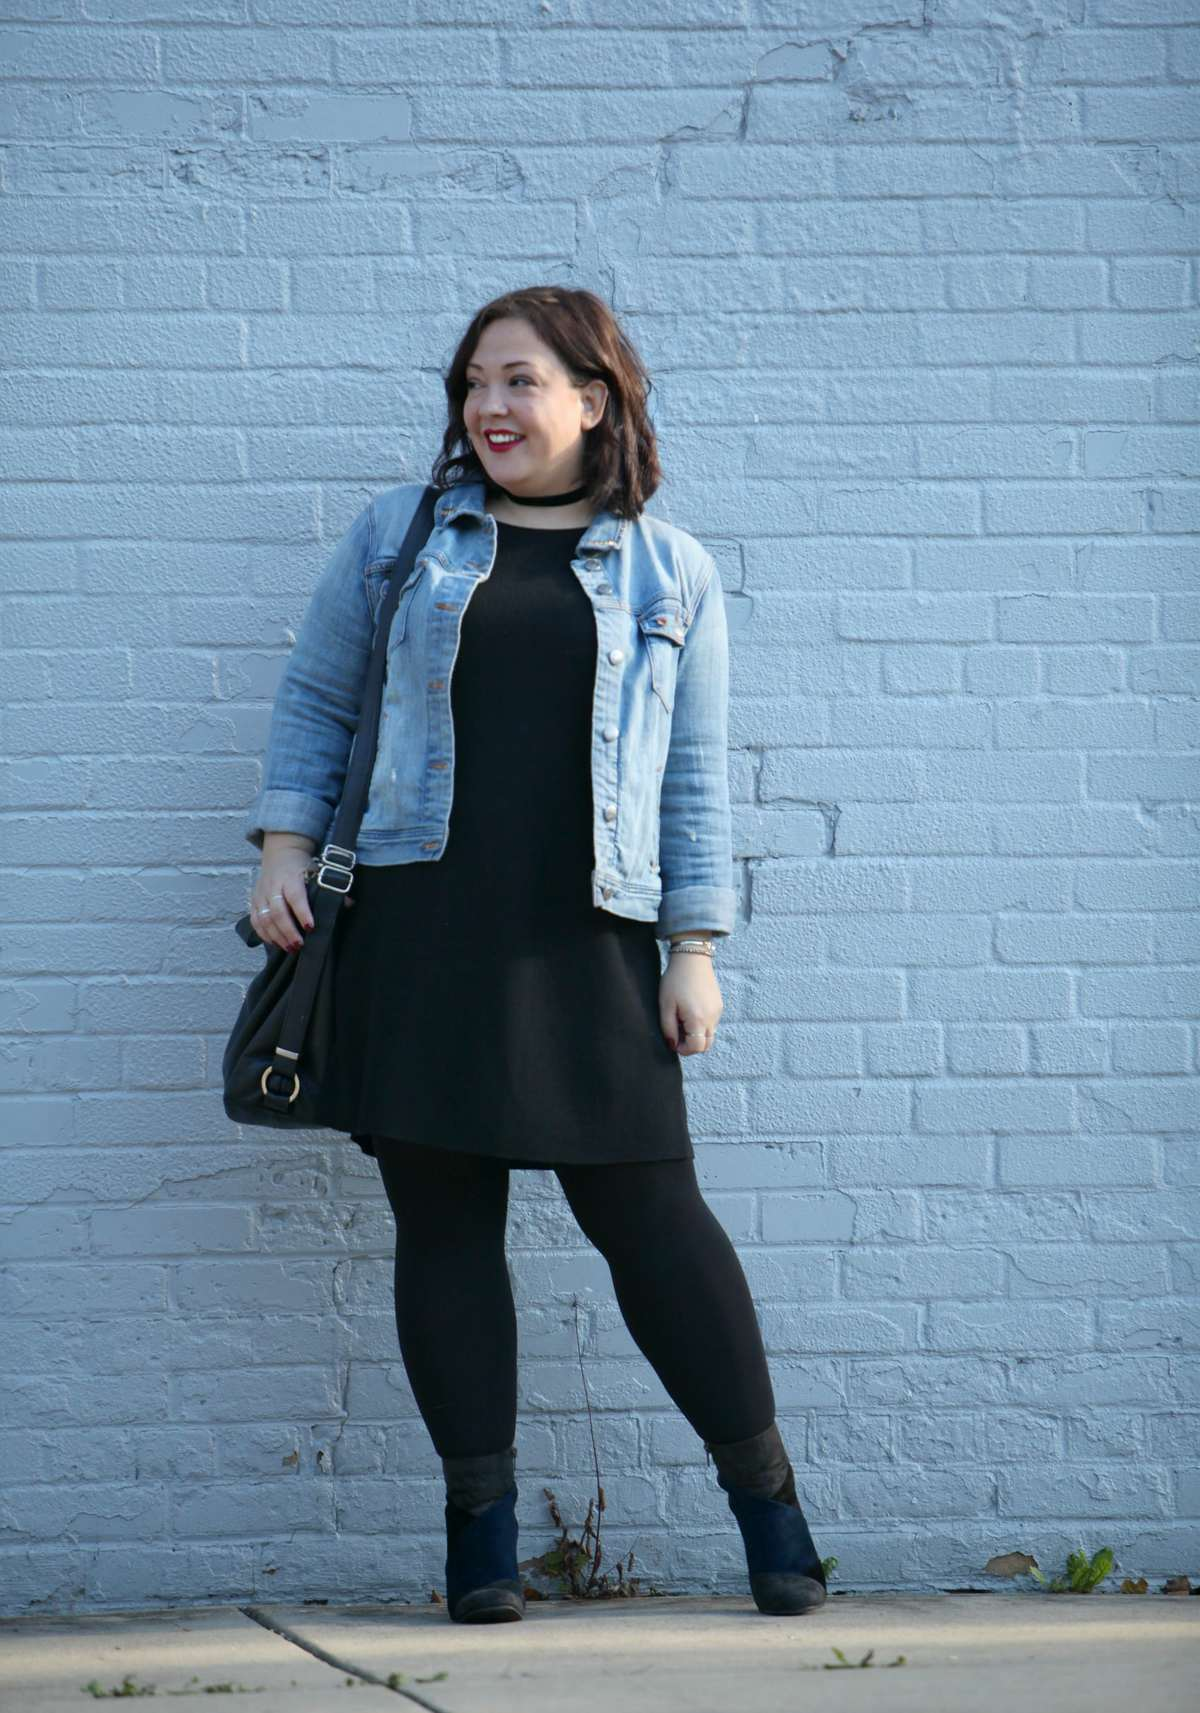 Alison Gary of Wardrobe Oxygen in an Eileen Fisher dress, J. Crew denim jacket, and 7 Dial Shoes patchwork ankle boots